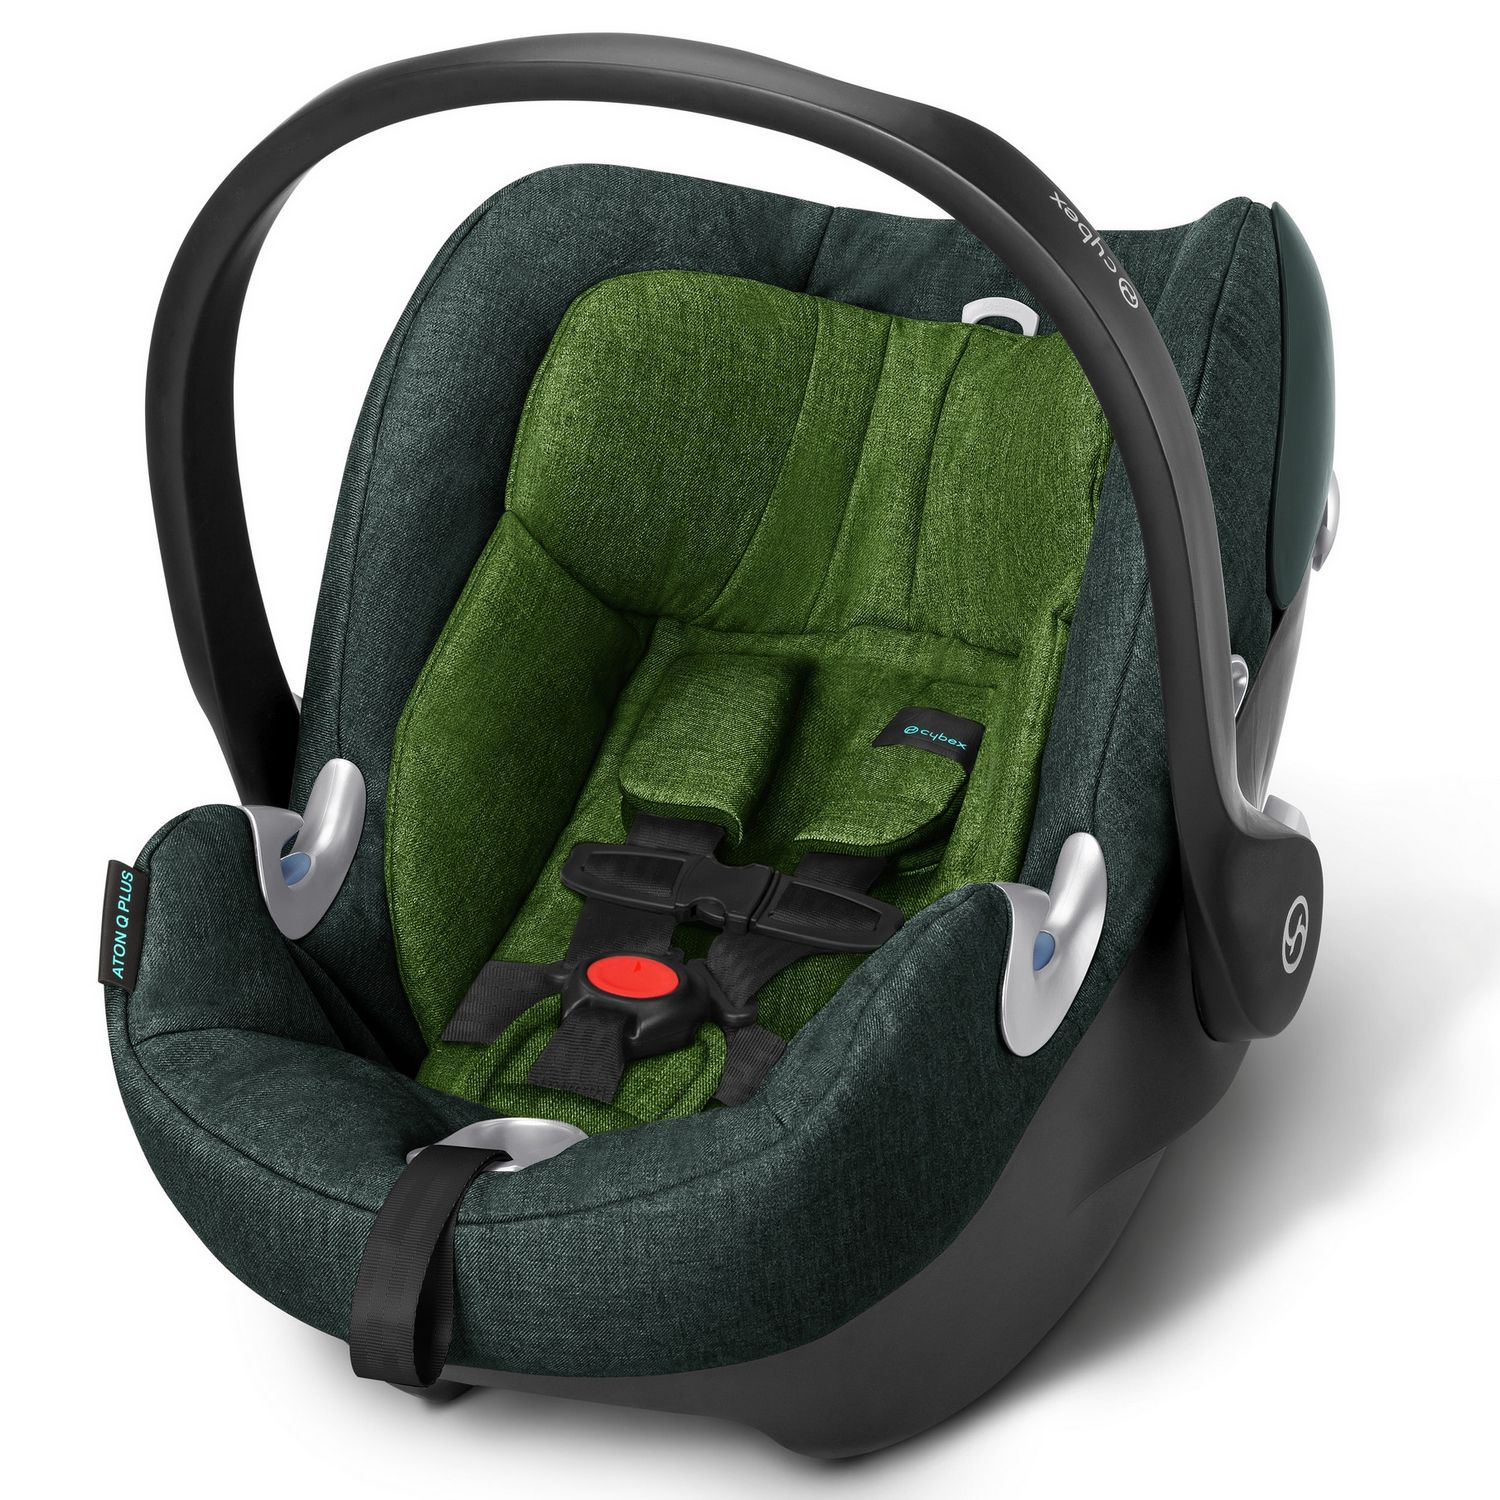 Avocent Aton Q Plus Infant Car Seat - Hawaii